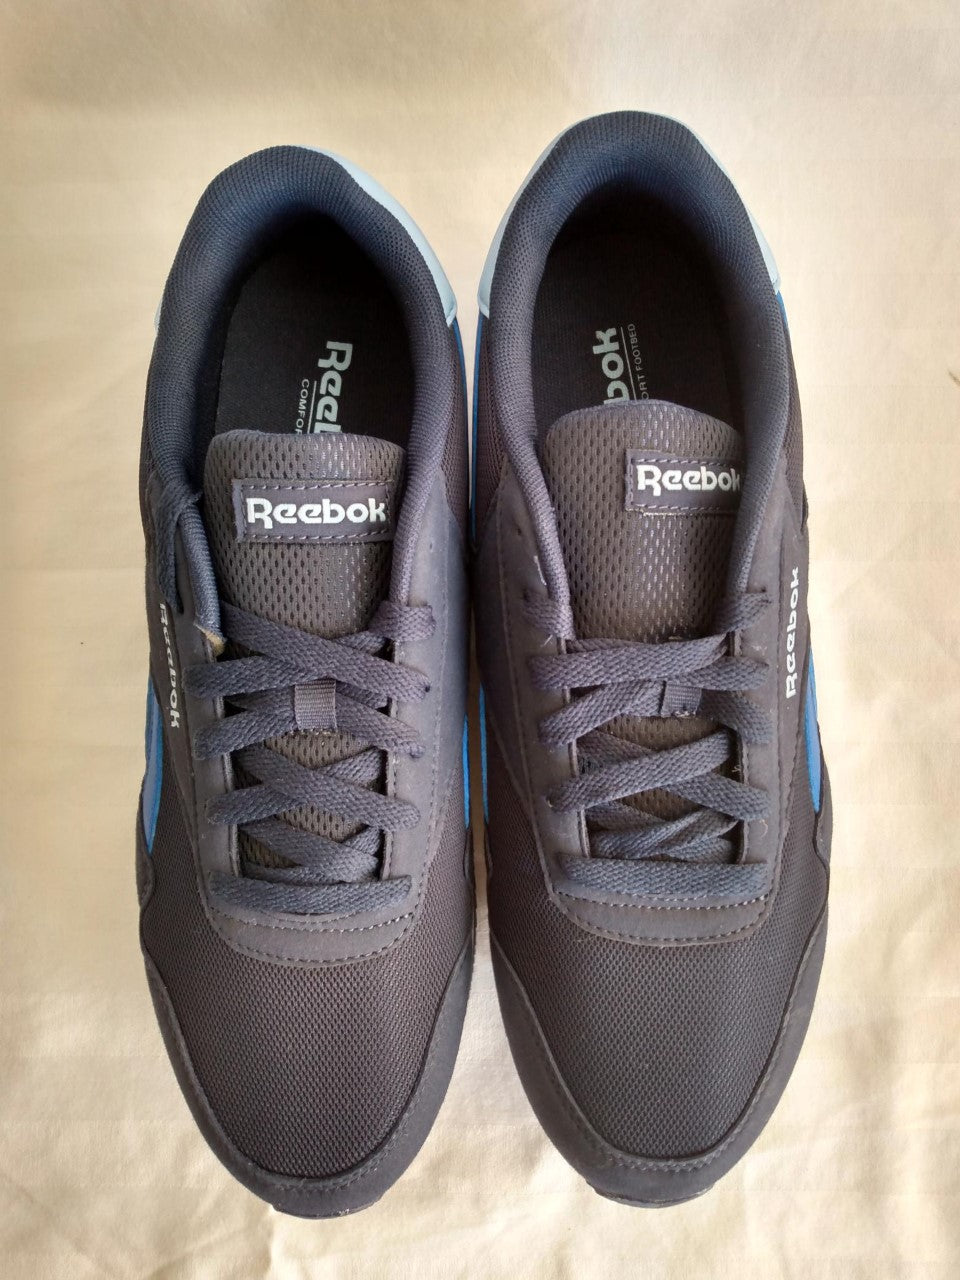 Reebok Women's Royal Classic Running Shoes - Size 11 - NEW